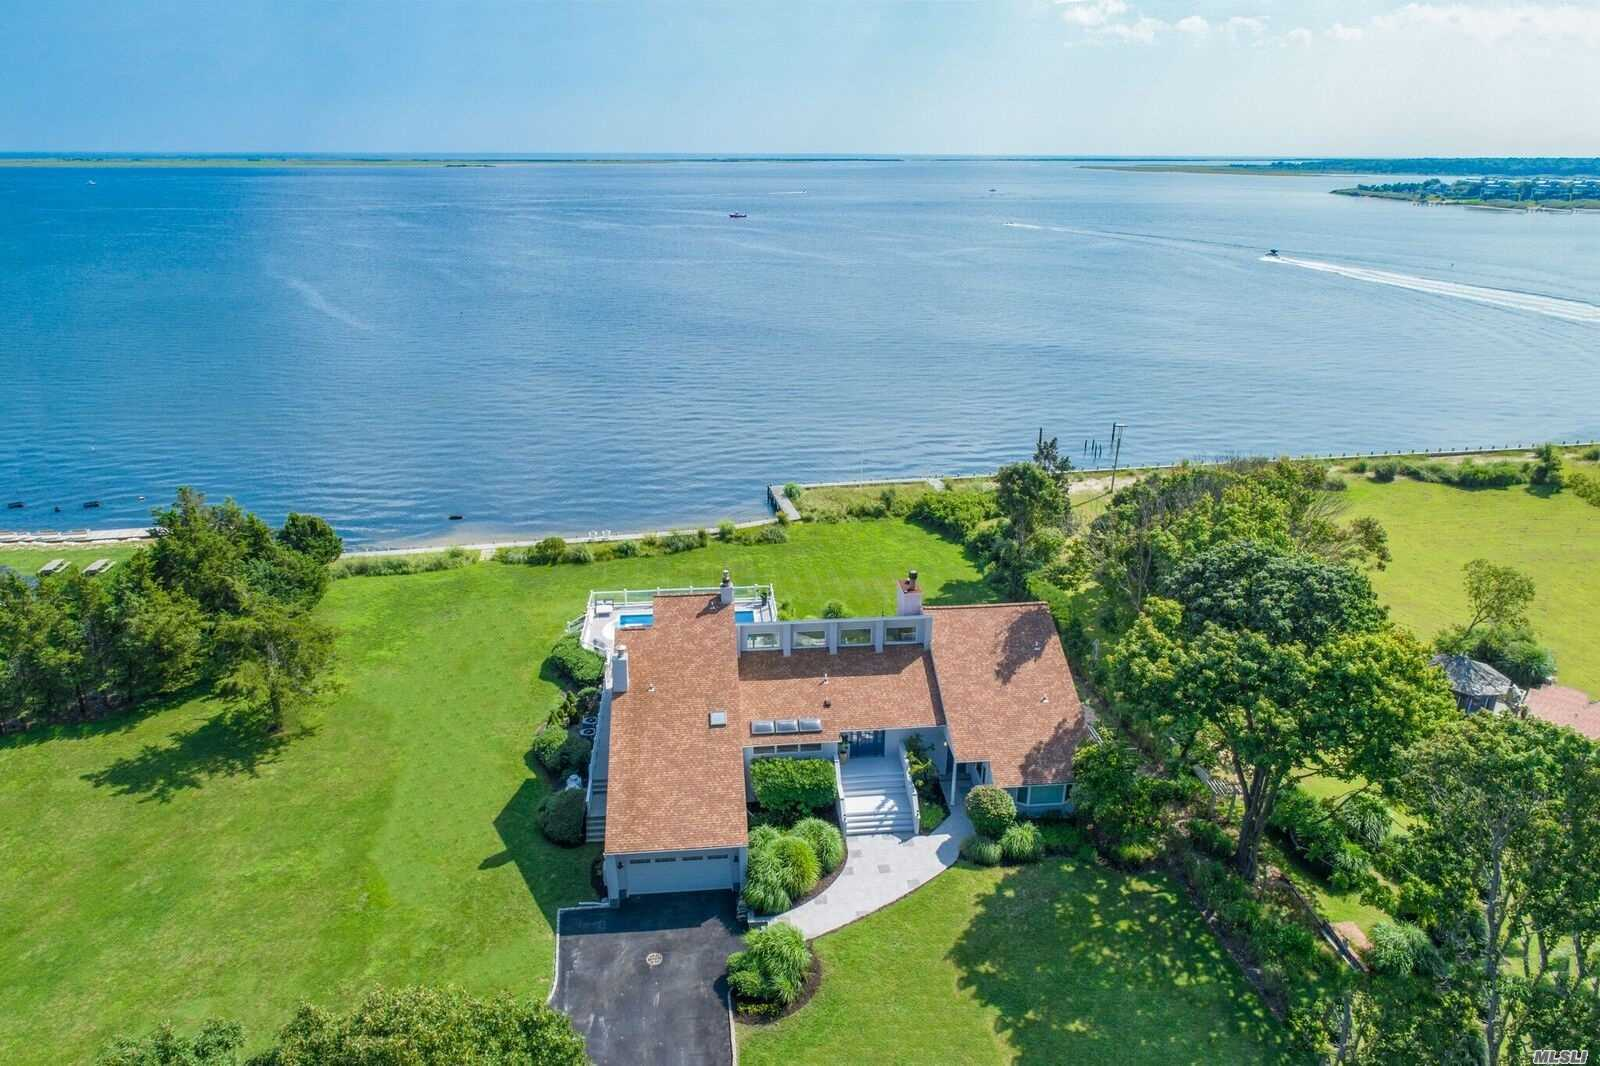 Newly Renovated 6, 000 Sqft Bayfront Designer Summer Getaway! Perflectly Sited On 1.07 Pristine Bayfront Acres Offering Endless Wide Open Views Of Moriches Bay . A True Boaters Paradise, Fully Bulkheaded , Boasting All New Modern Open And Luxurious Living Spaces Ideal For Entertaining All Summer Long! Complete With 5 Beds Including A Private Master Suite With Balcony, Private Guest Suite Quarters Along With A 16 X32 Sunsoaked Heated Pool, 3 Fireplaces And Multiple Outdoor Entertaining Spaces!!